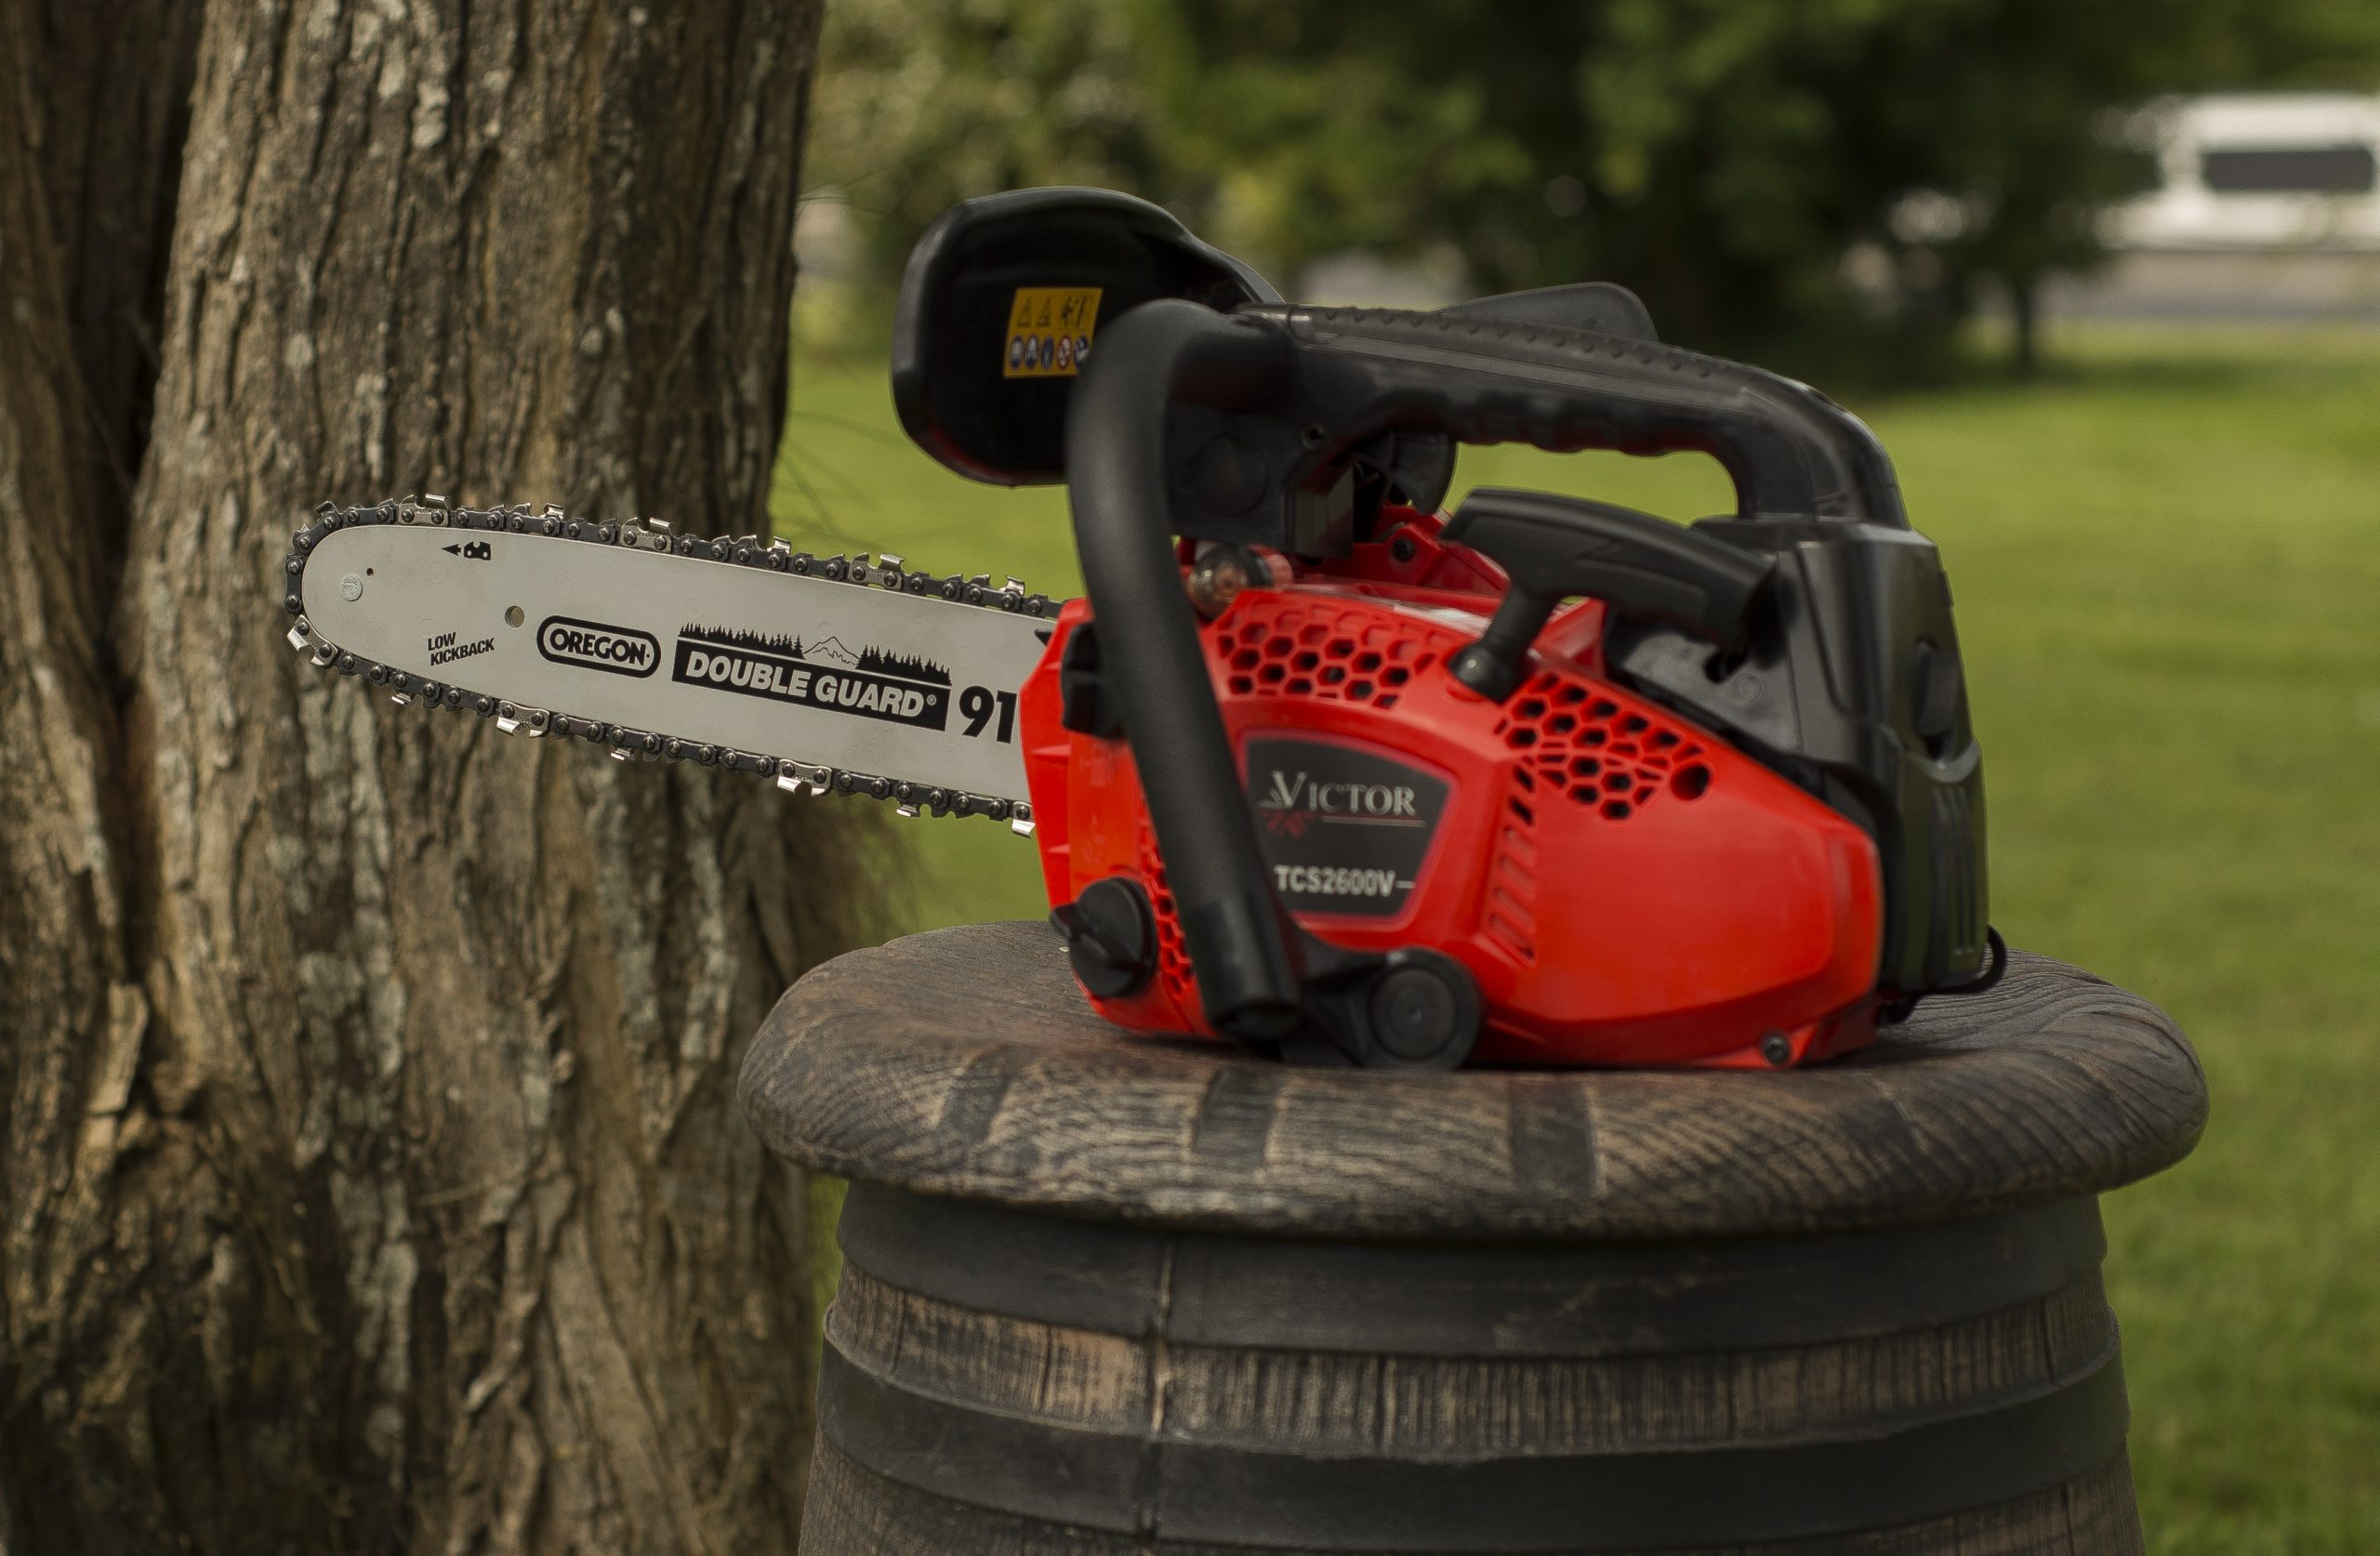 VICTOR Chainsaw TCS2600-VIC